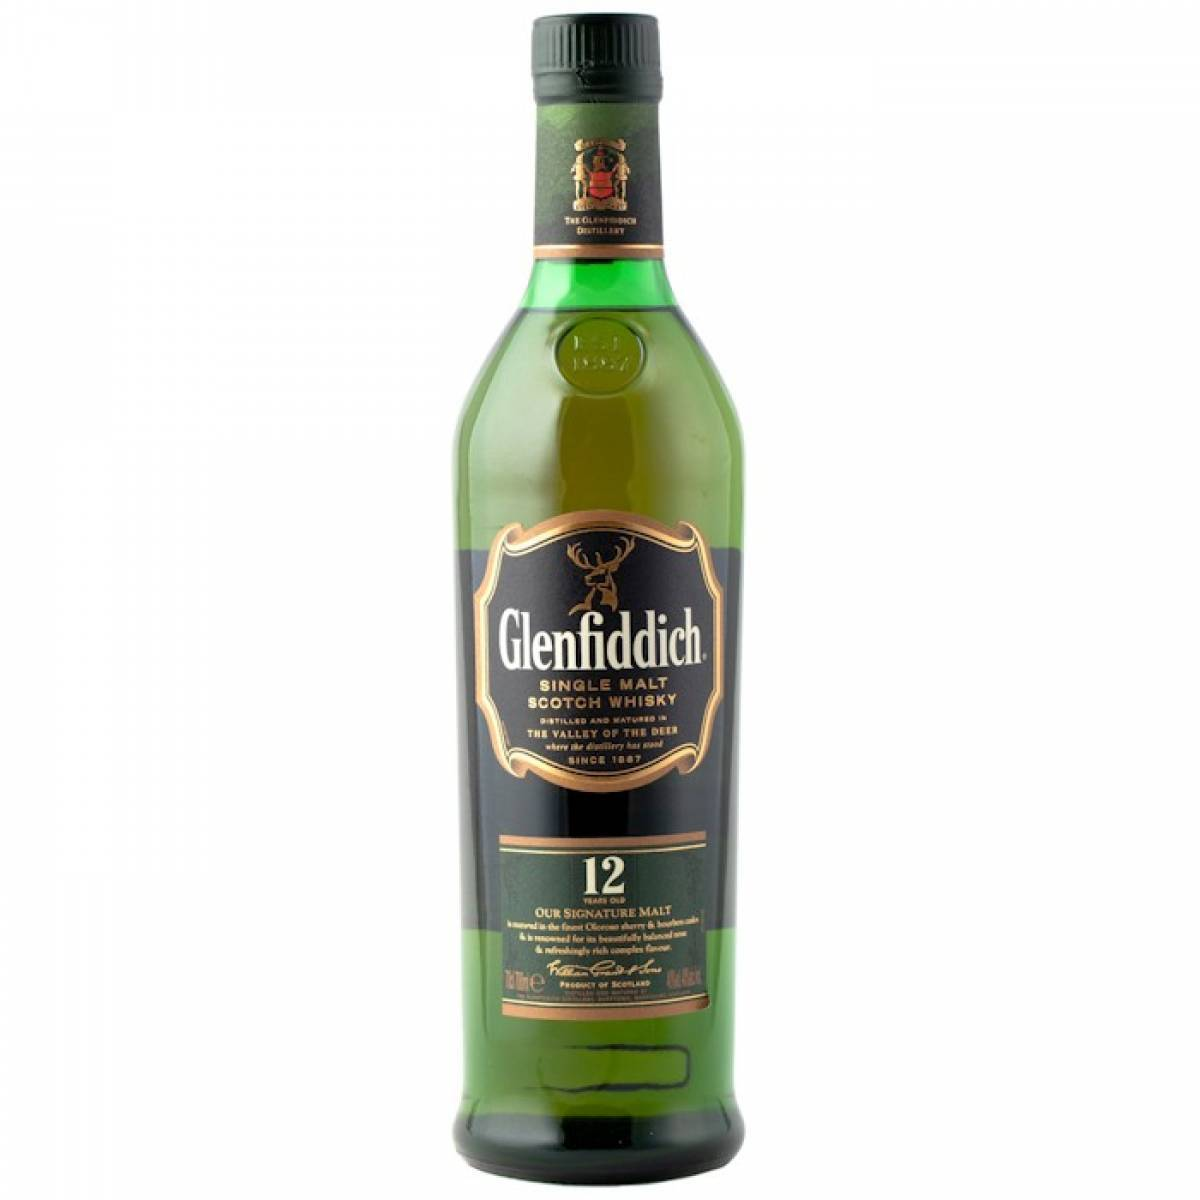 Glenfiddich, 12 Years Old